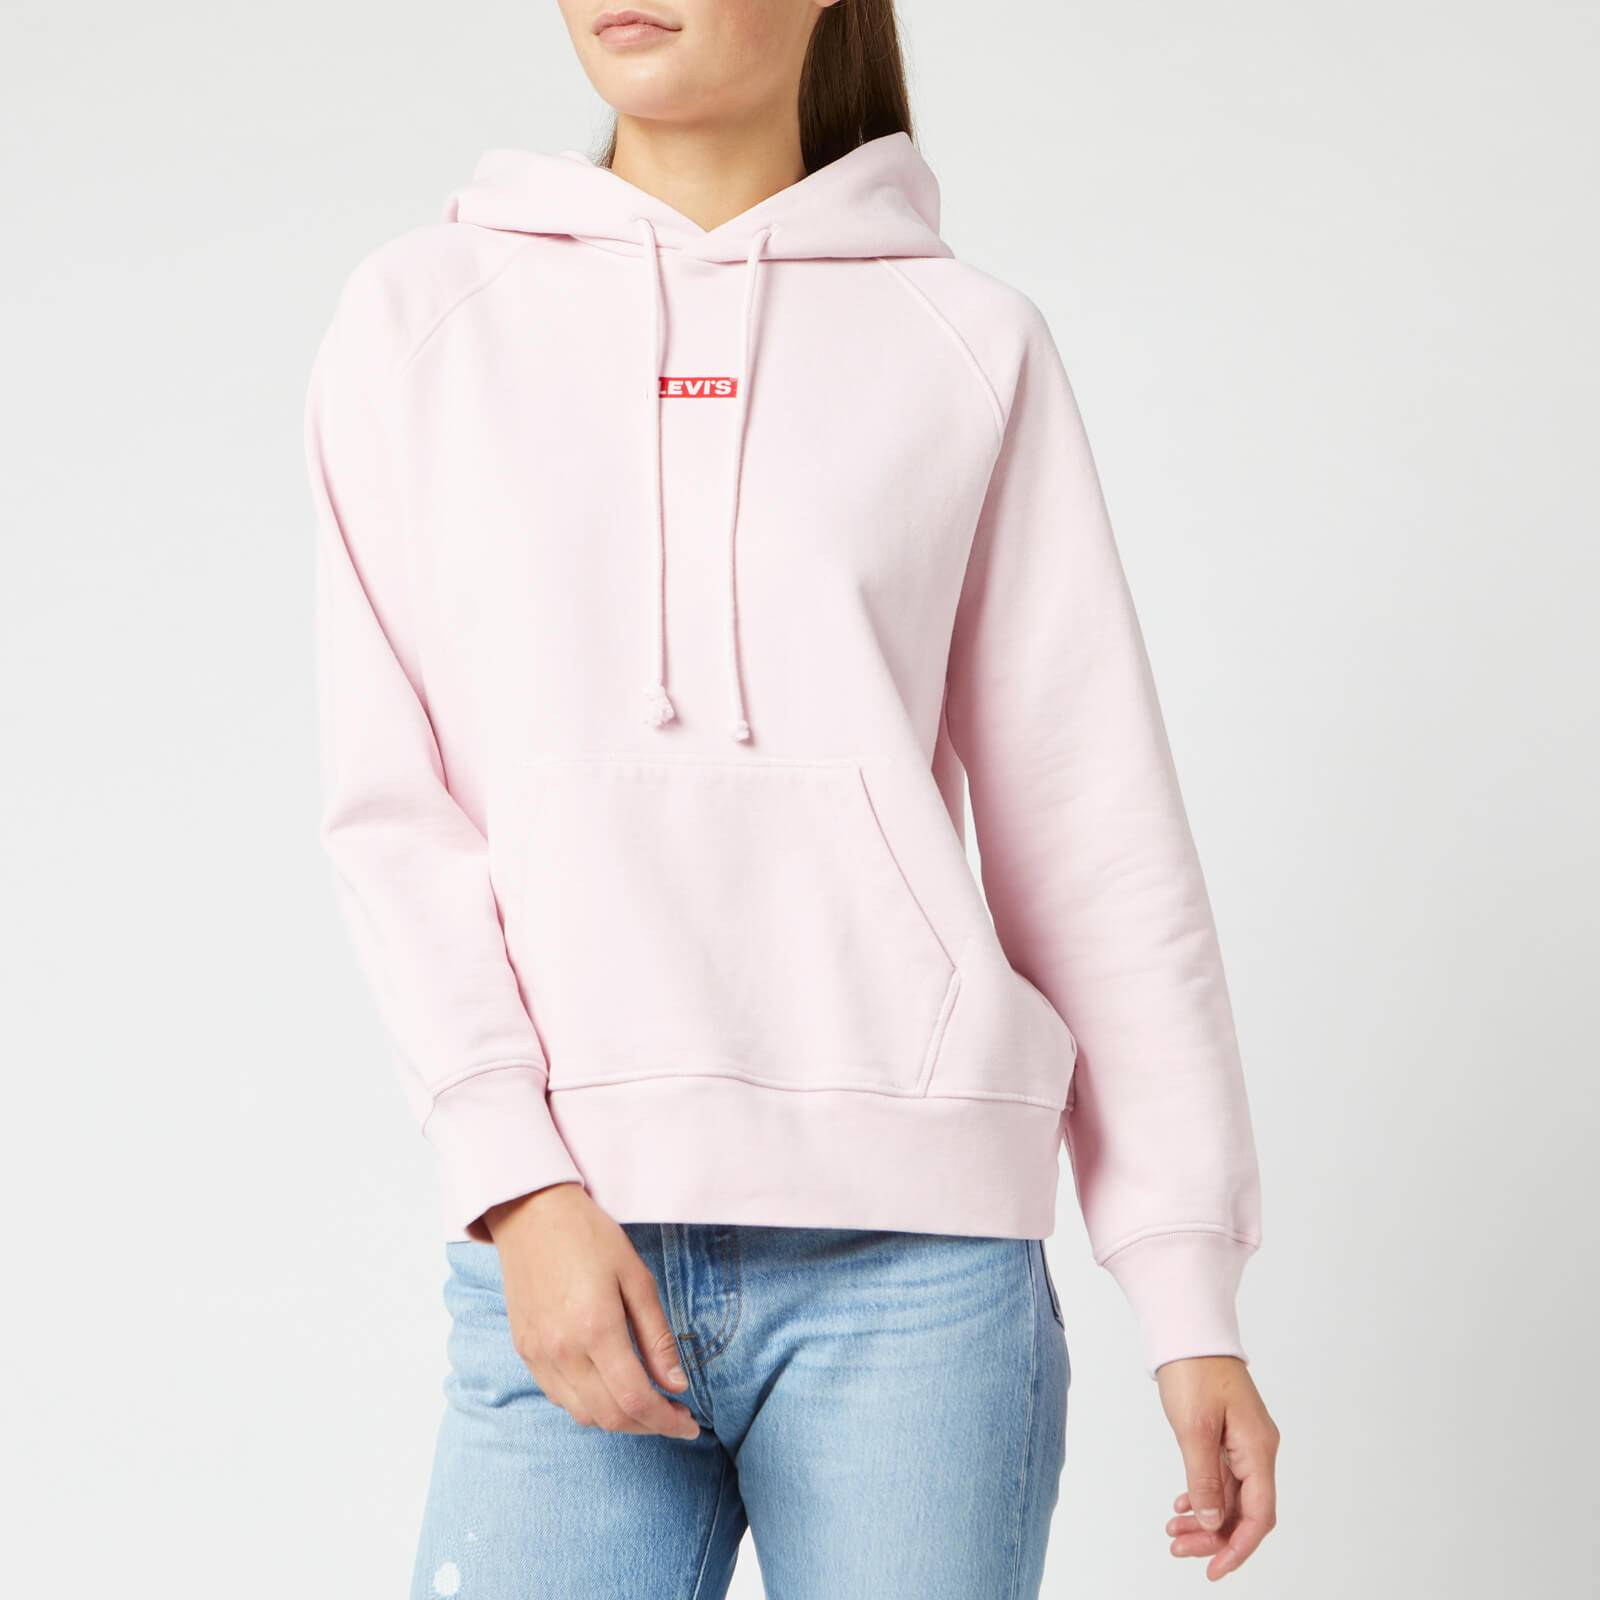 Levi's s Graphic Sport Hoodie - Pink Lady - M - Pink